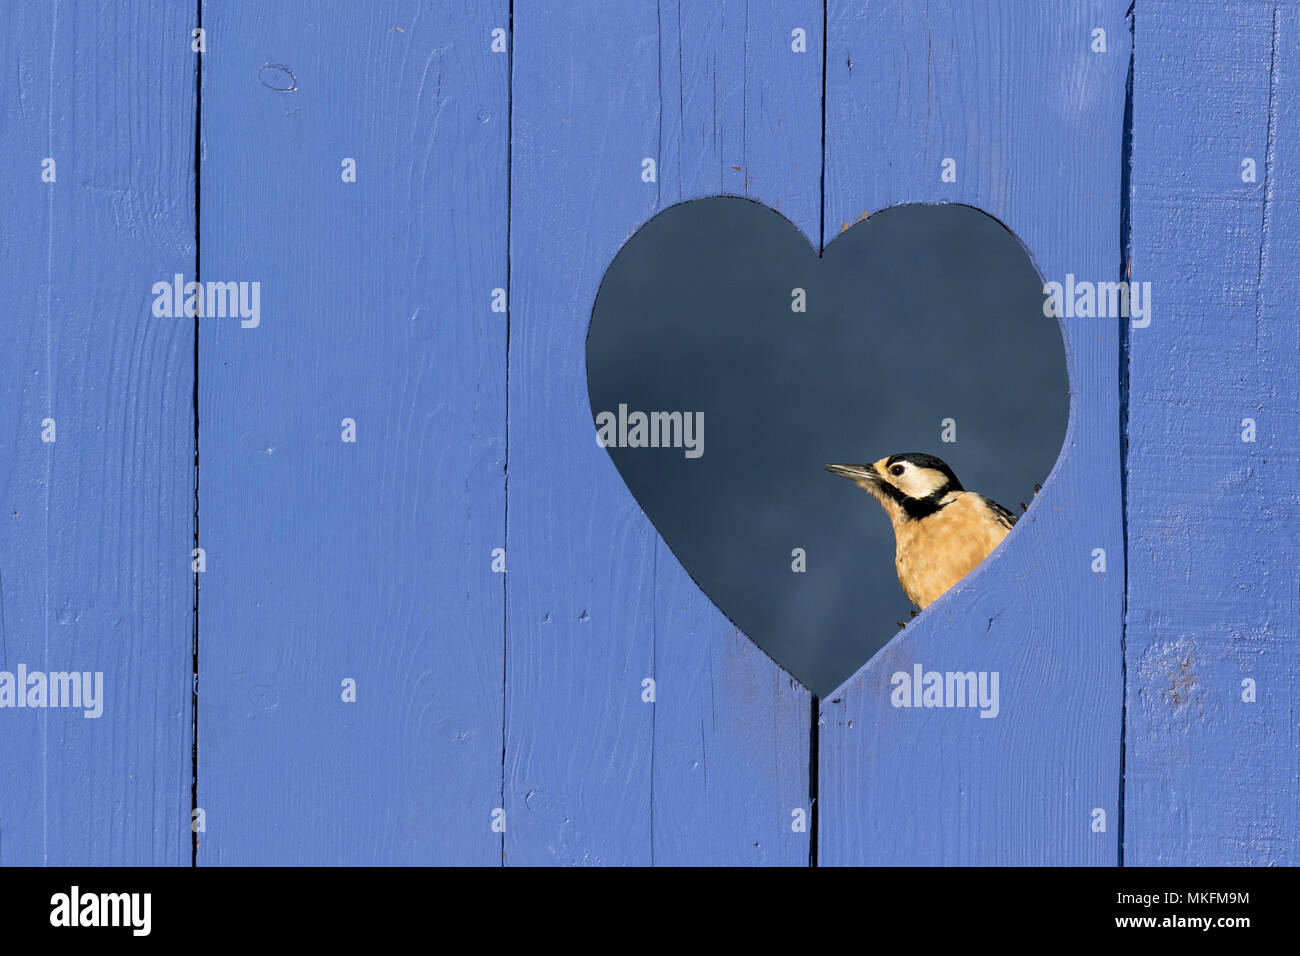 Great spotted woodpecker (Dendrocopos major) perched in a heart shape hole in a blue door, England - Stock Image